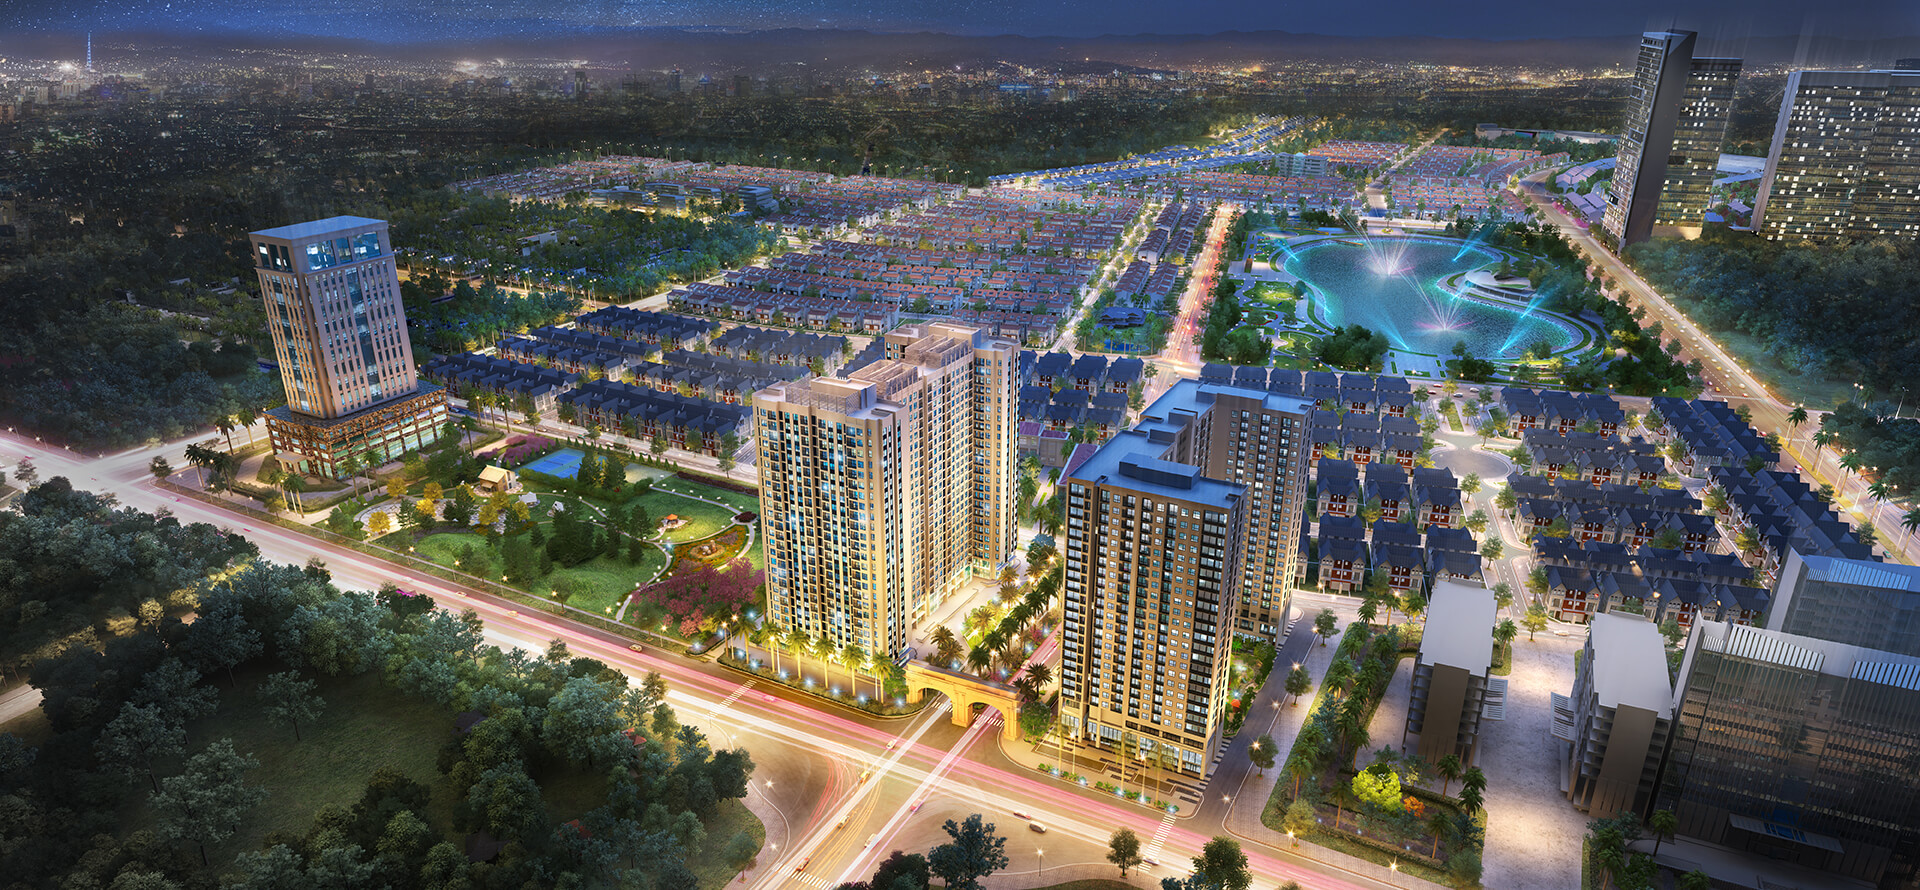 Anland Premium Apartment in Duong Noi New Urban of Nam Cuong – Diplomatic relations